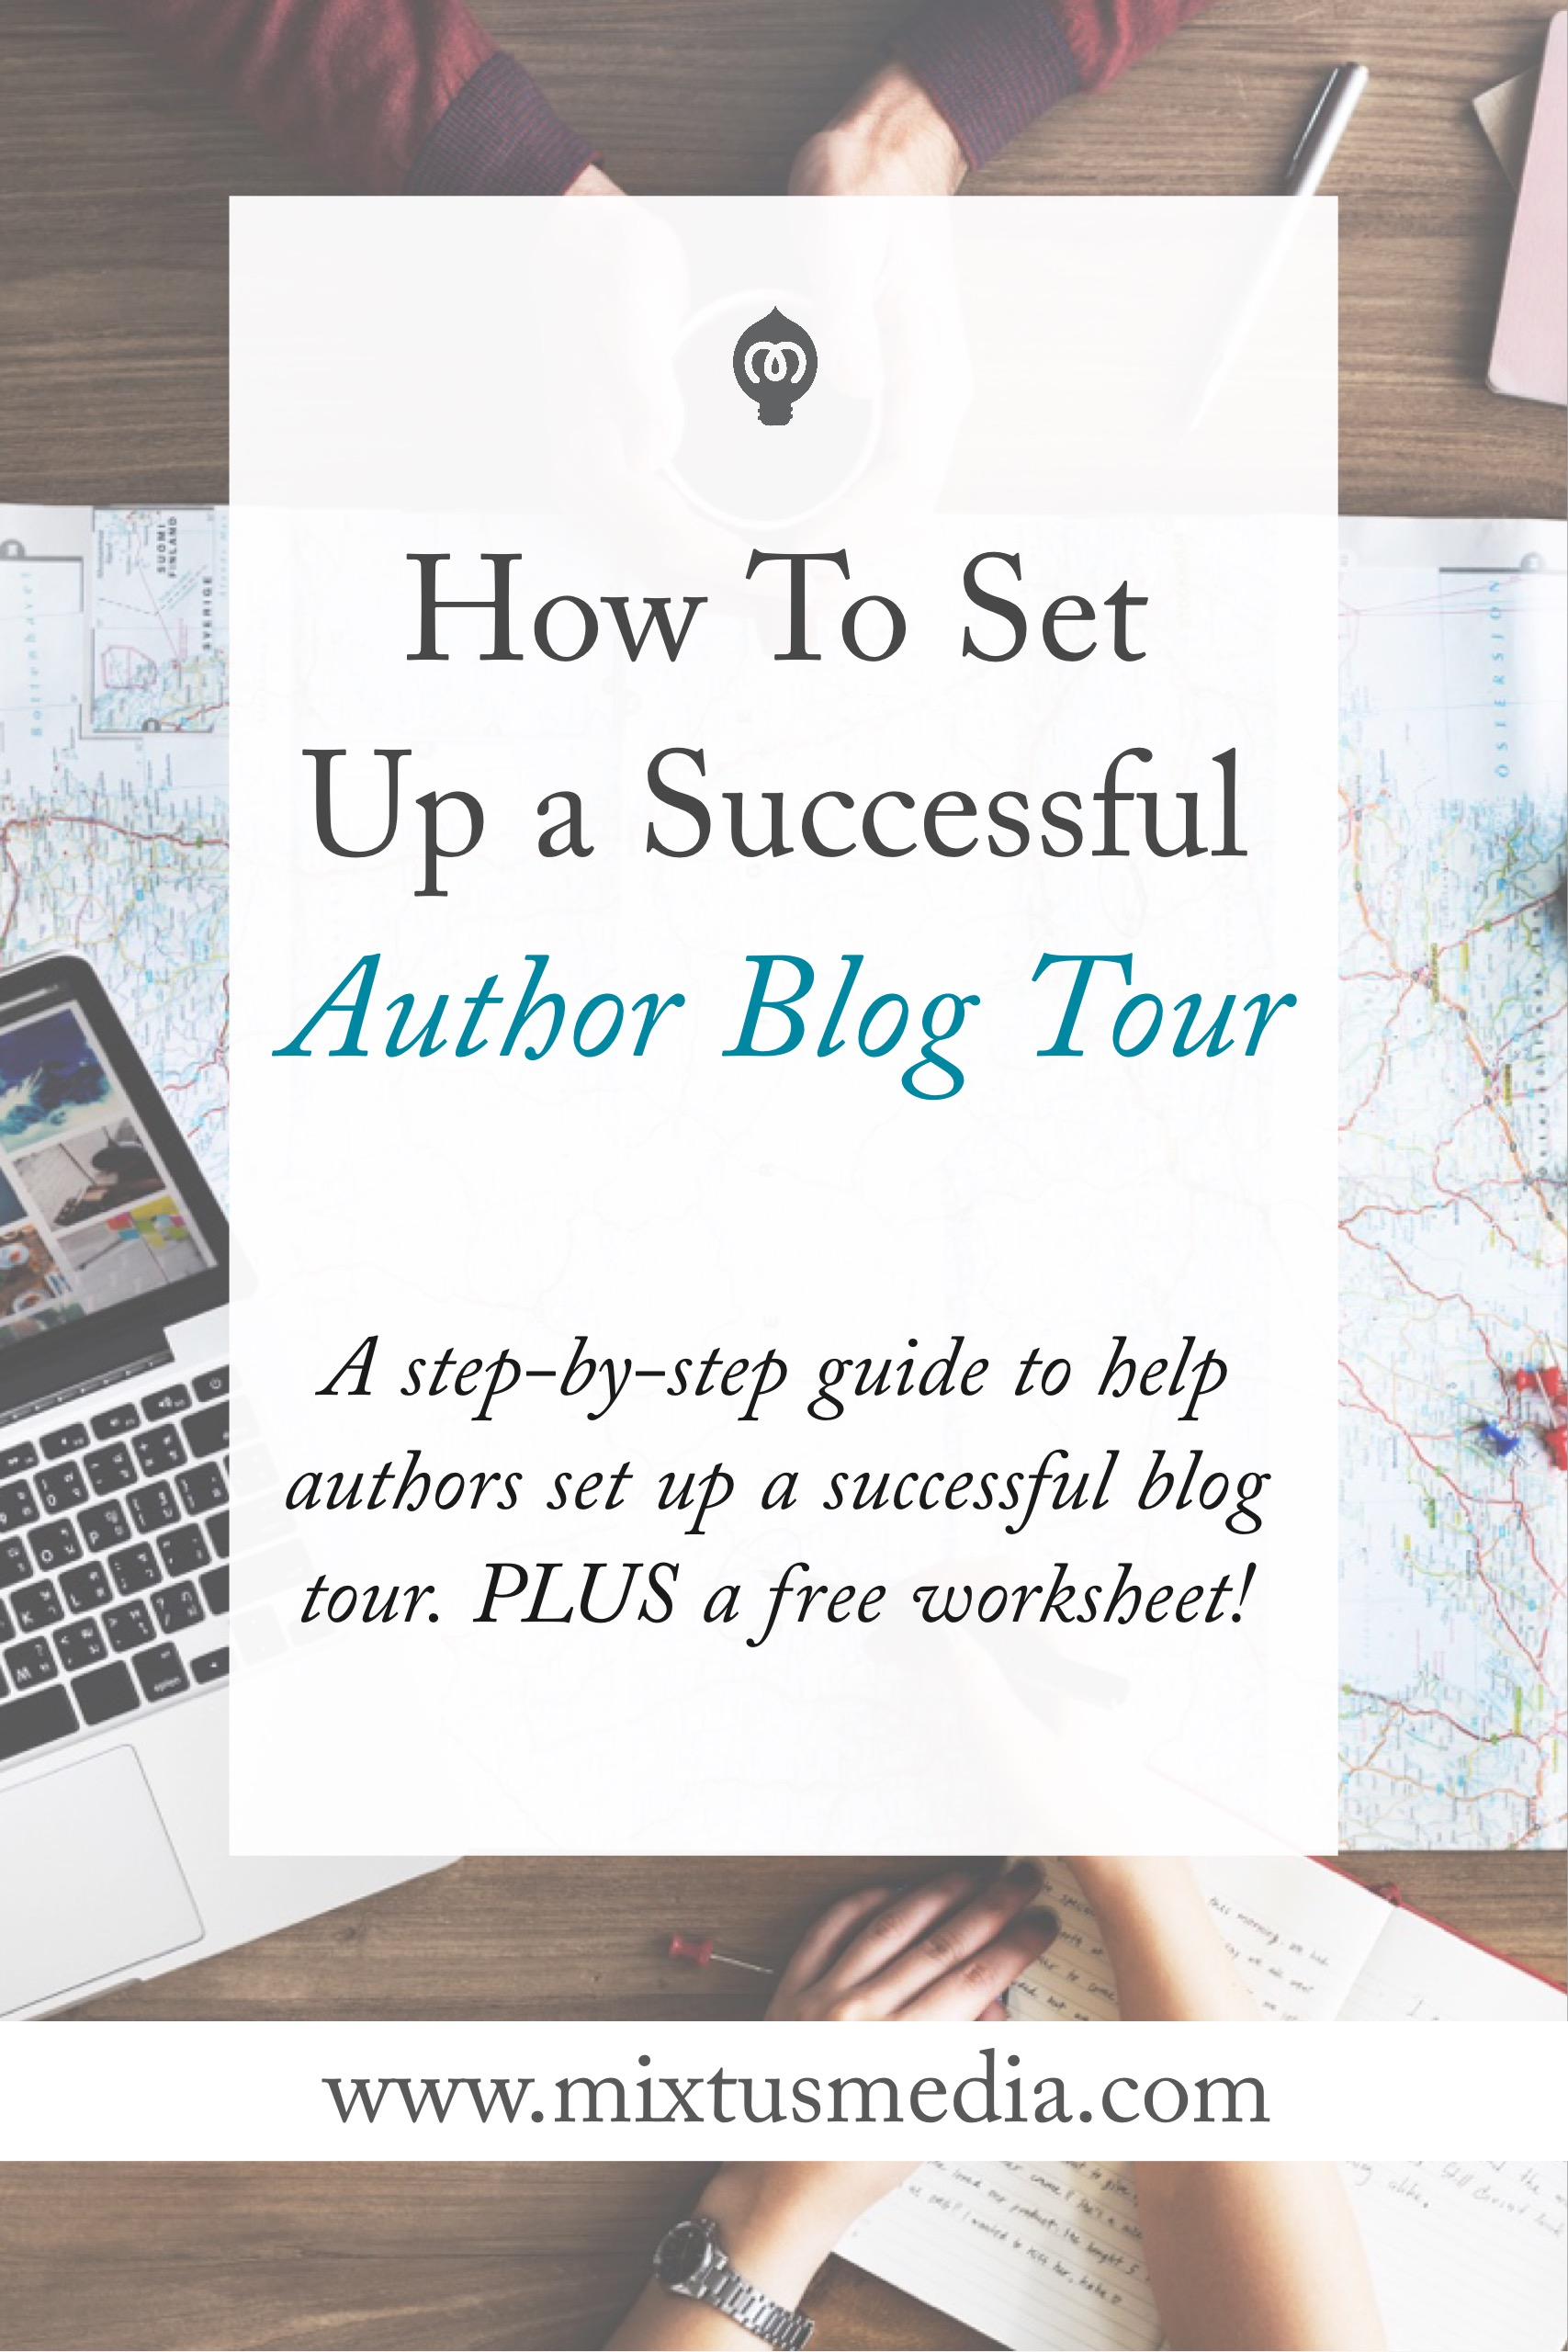 A step-by-step guide to help authors set up a successful blog tour. Plus a free worksheet!